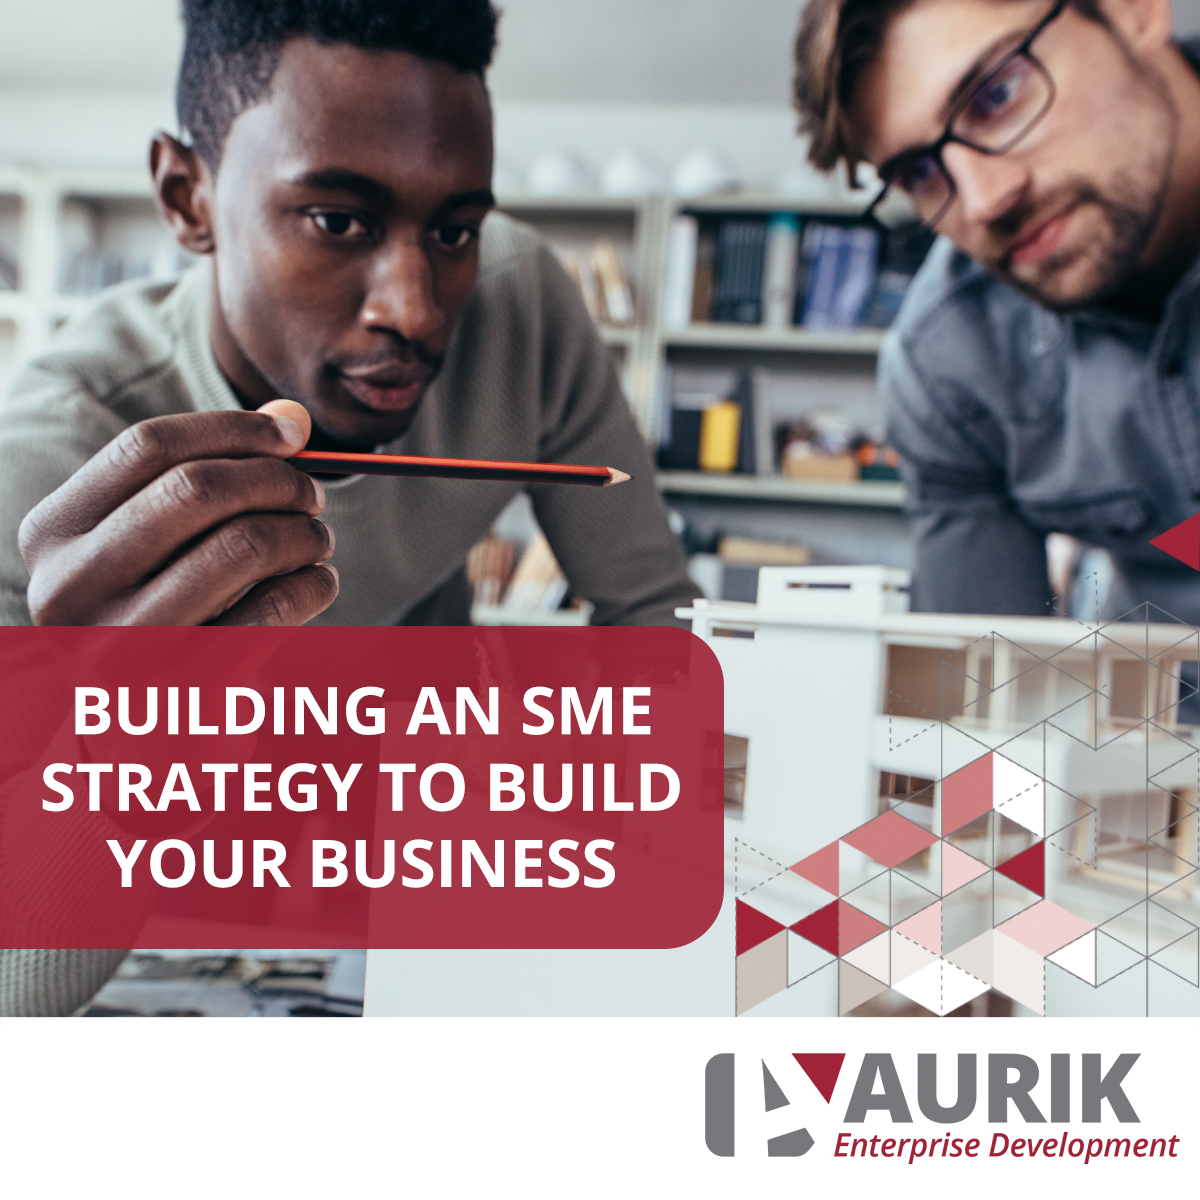 Using and building an SME strategy to build your business